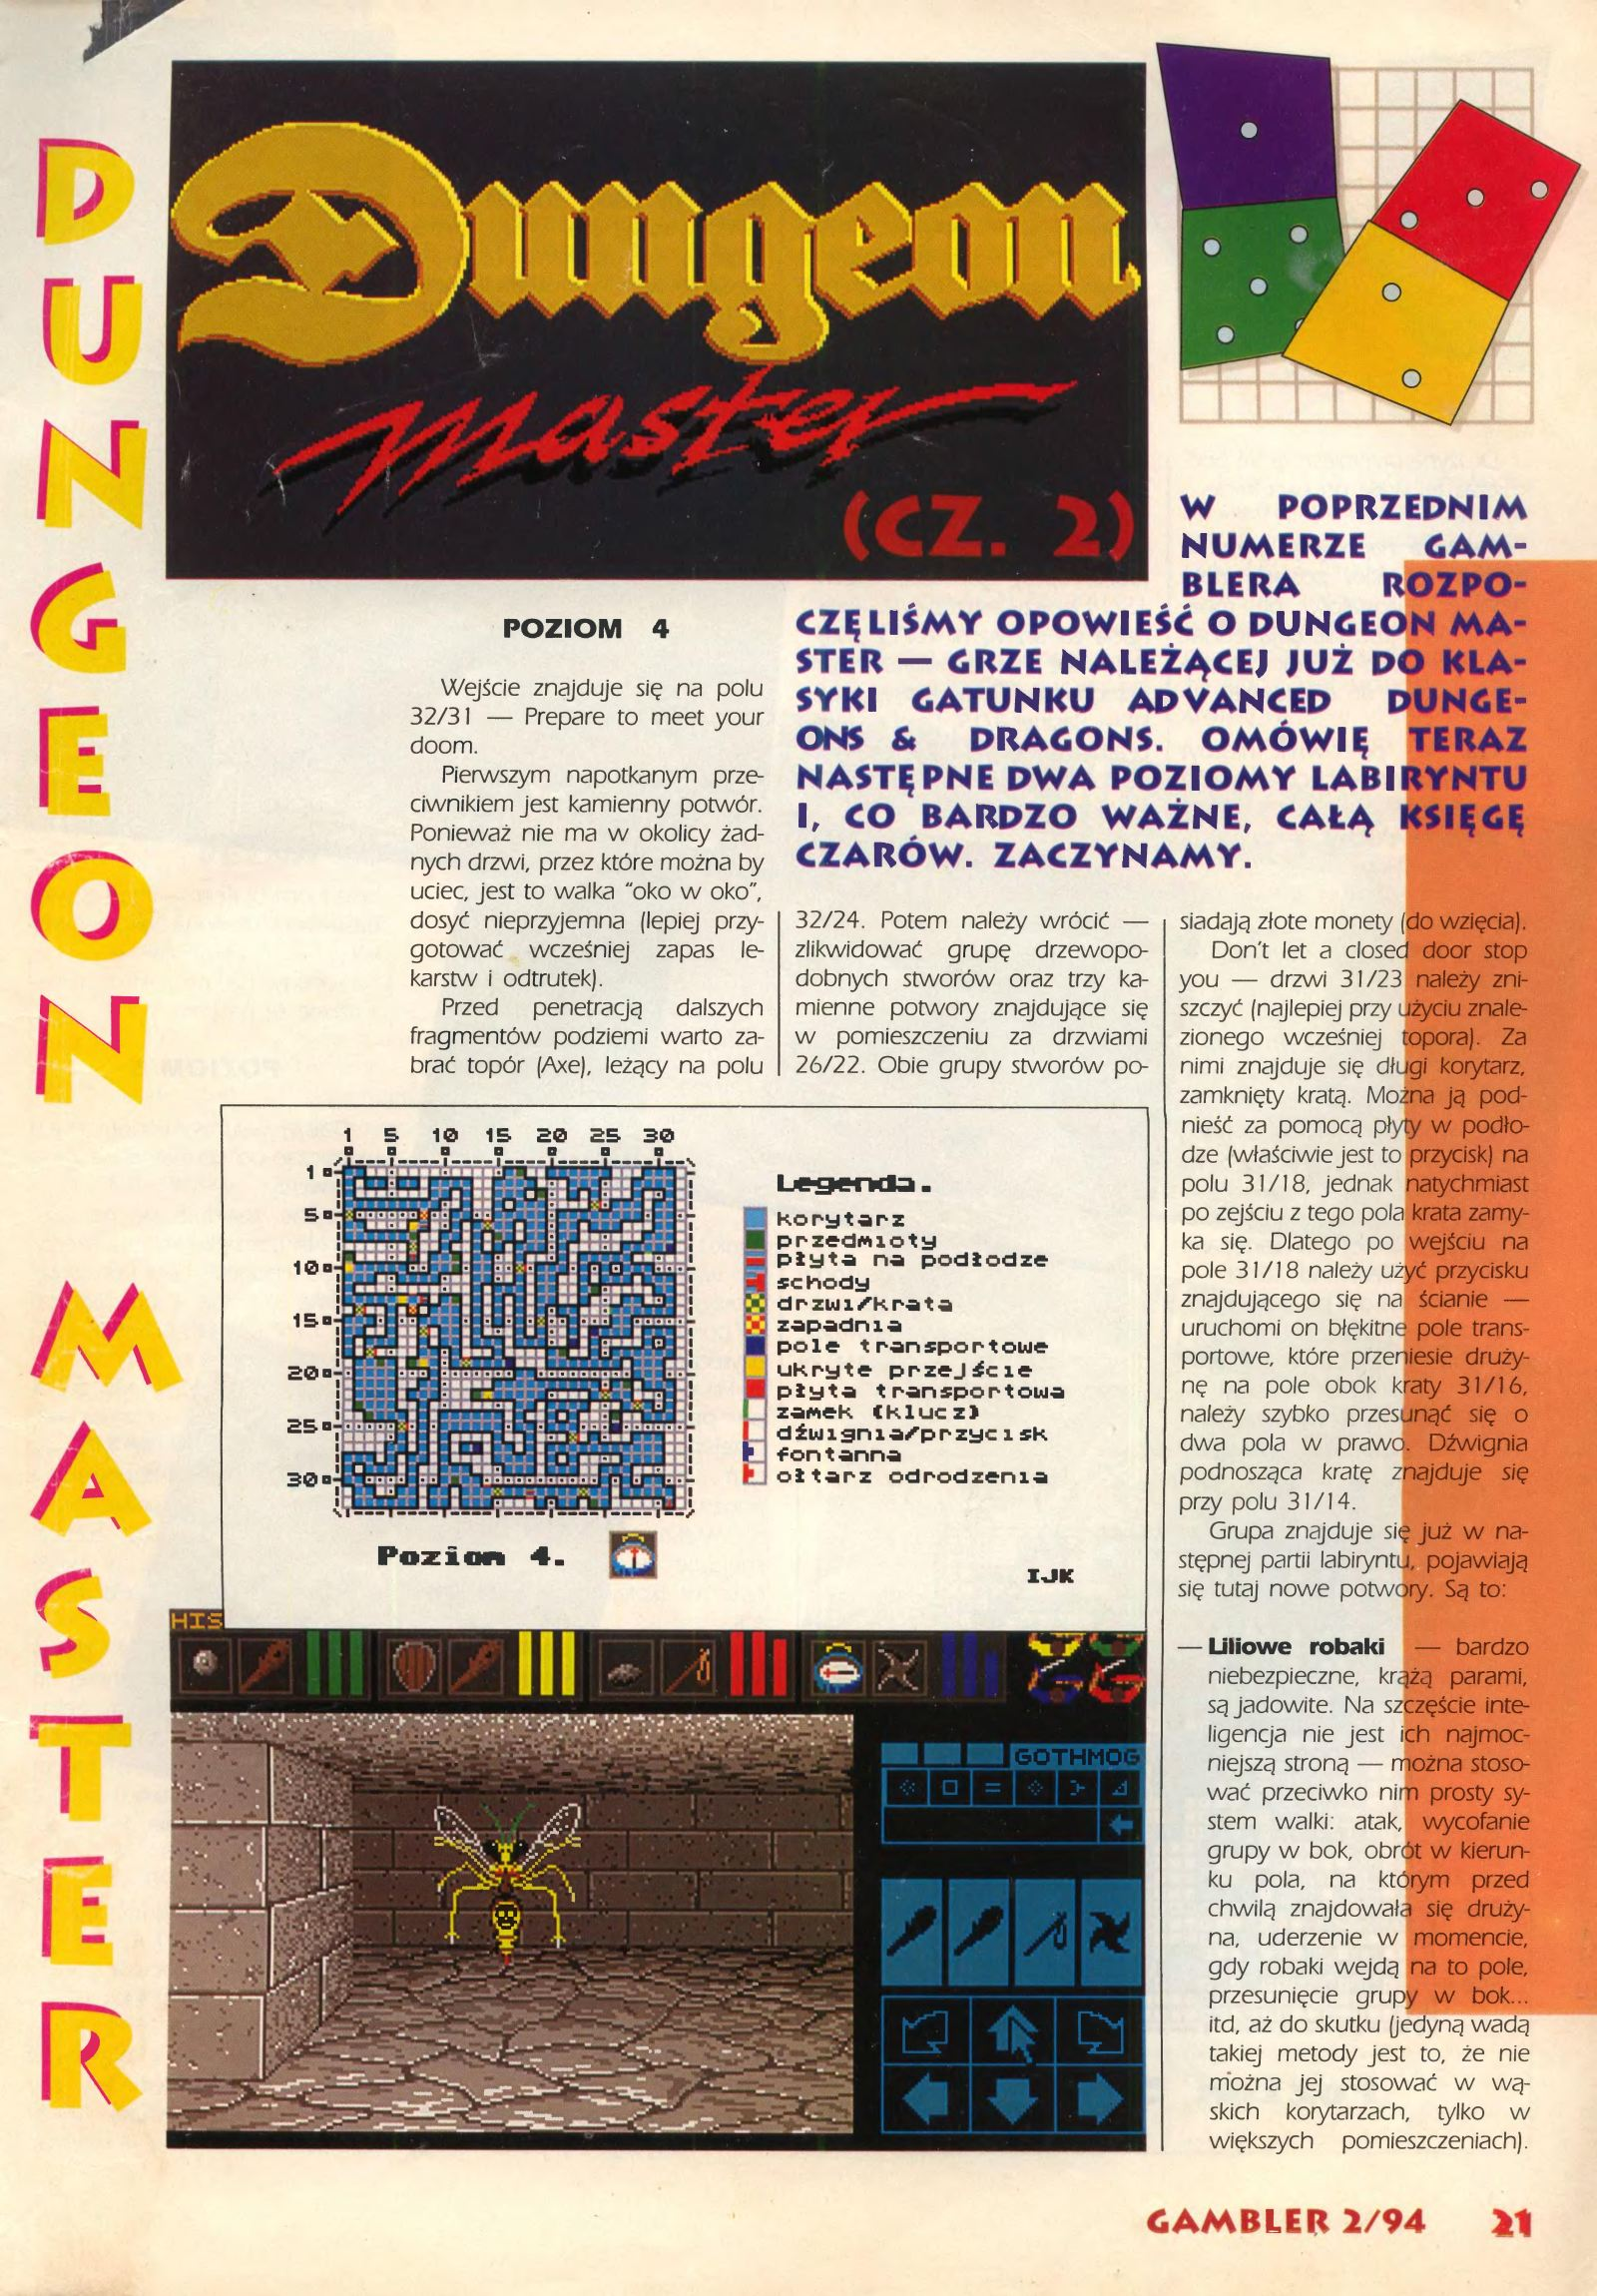 Dungeon Master Guide published in Polish magazine 'Gambler', February 1994, Page 21